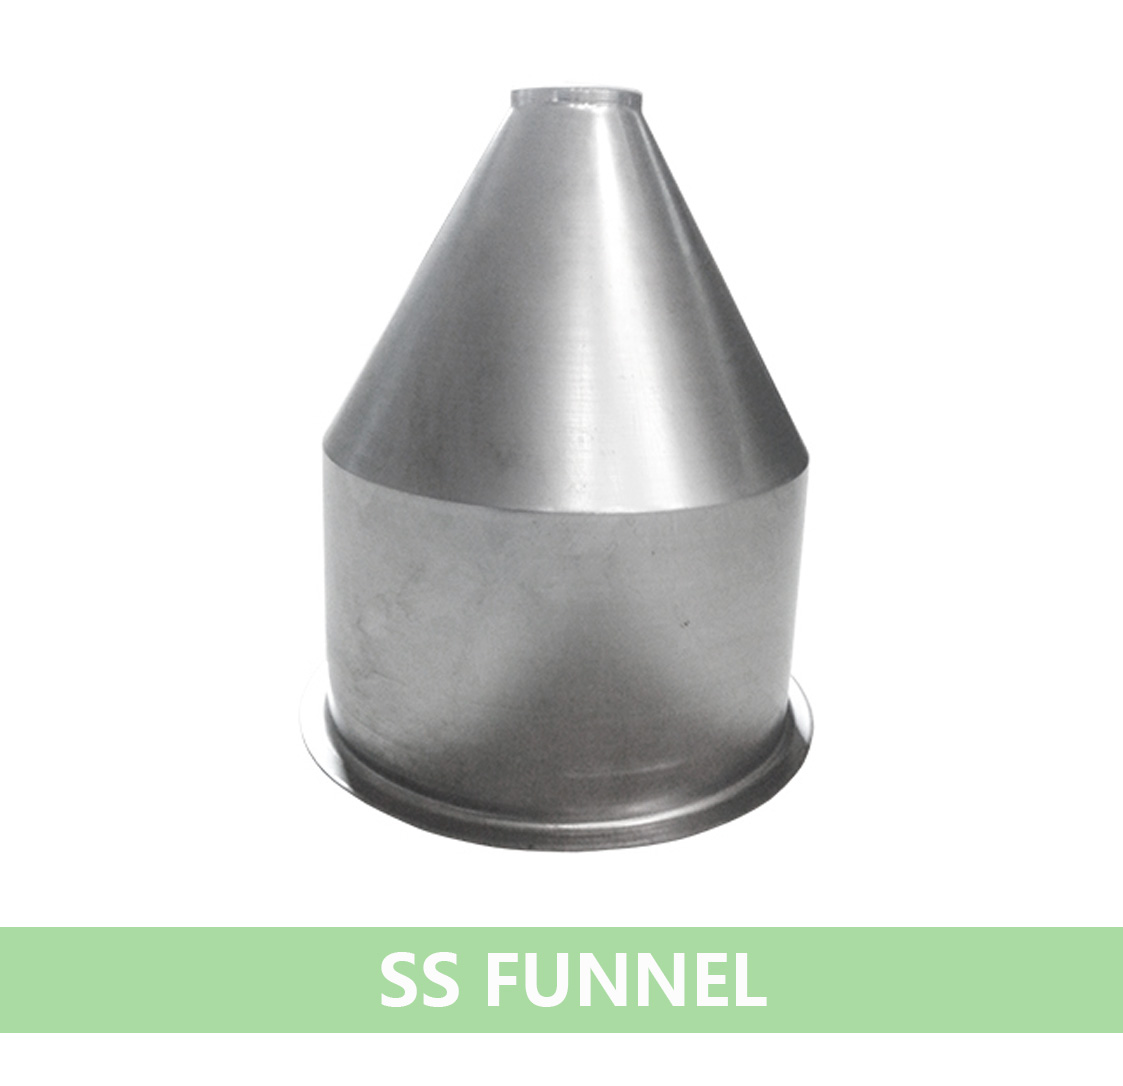 不锈钢漏斗 Stainless Steel Funnel